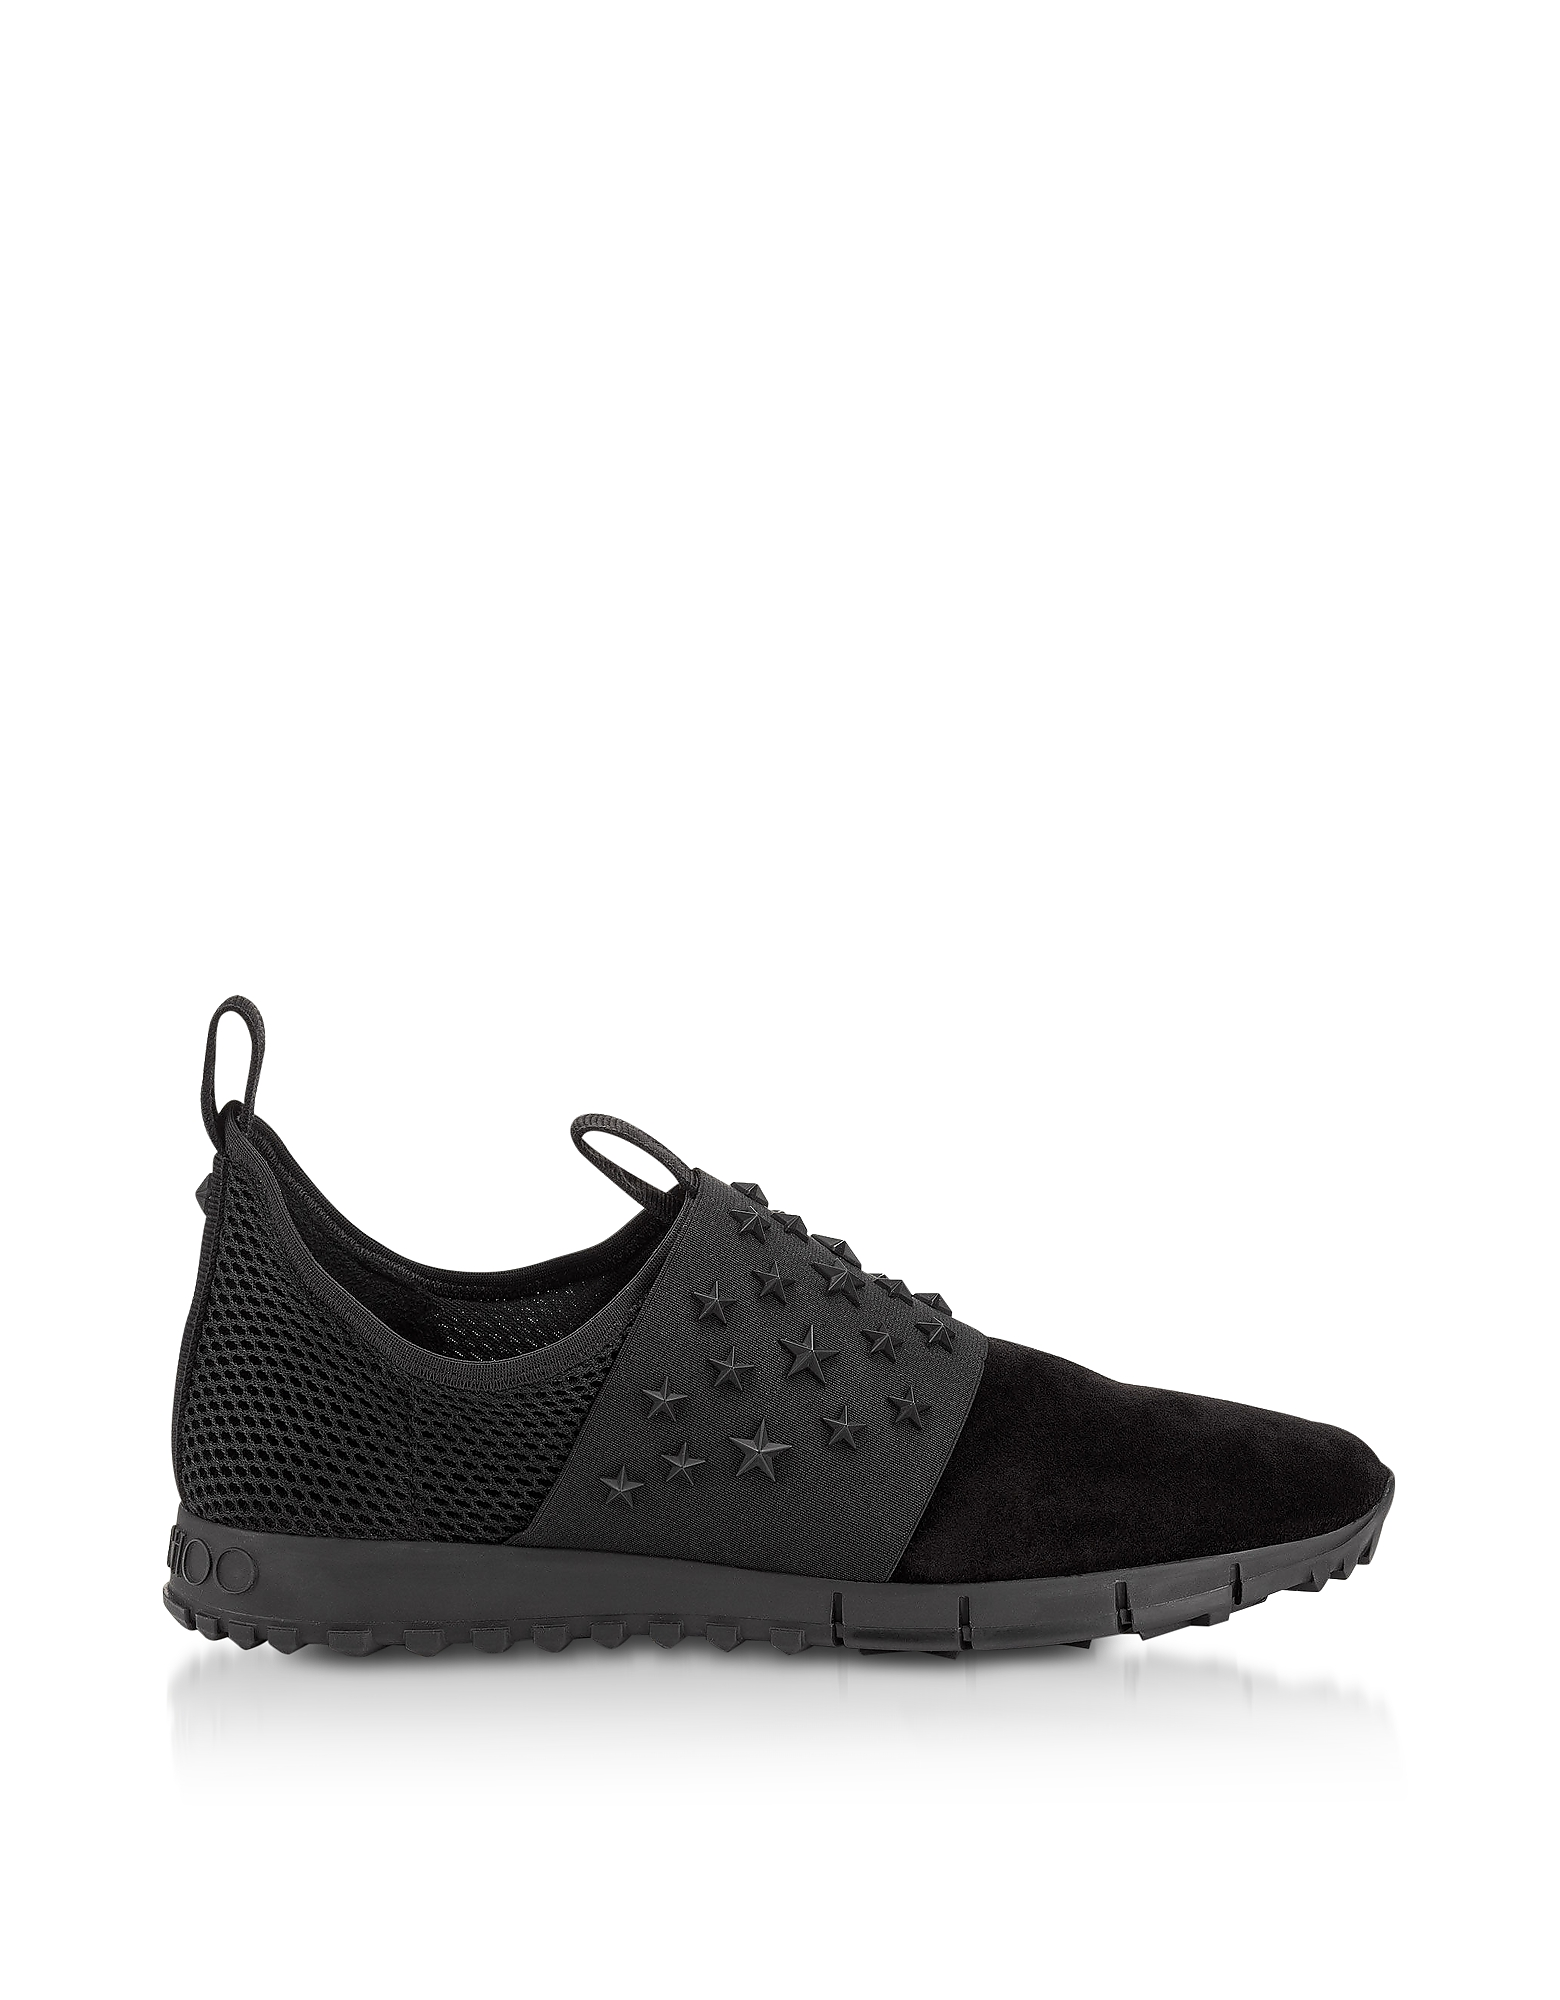 OAKLAND/M Black Suede and Mesh Slip On Trainer w/Stars